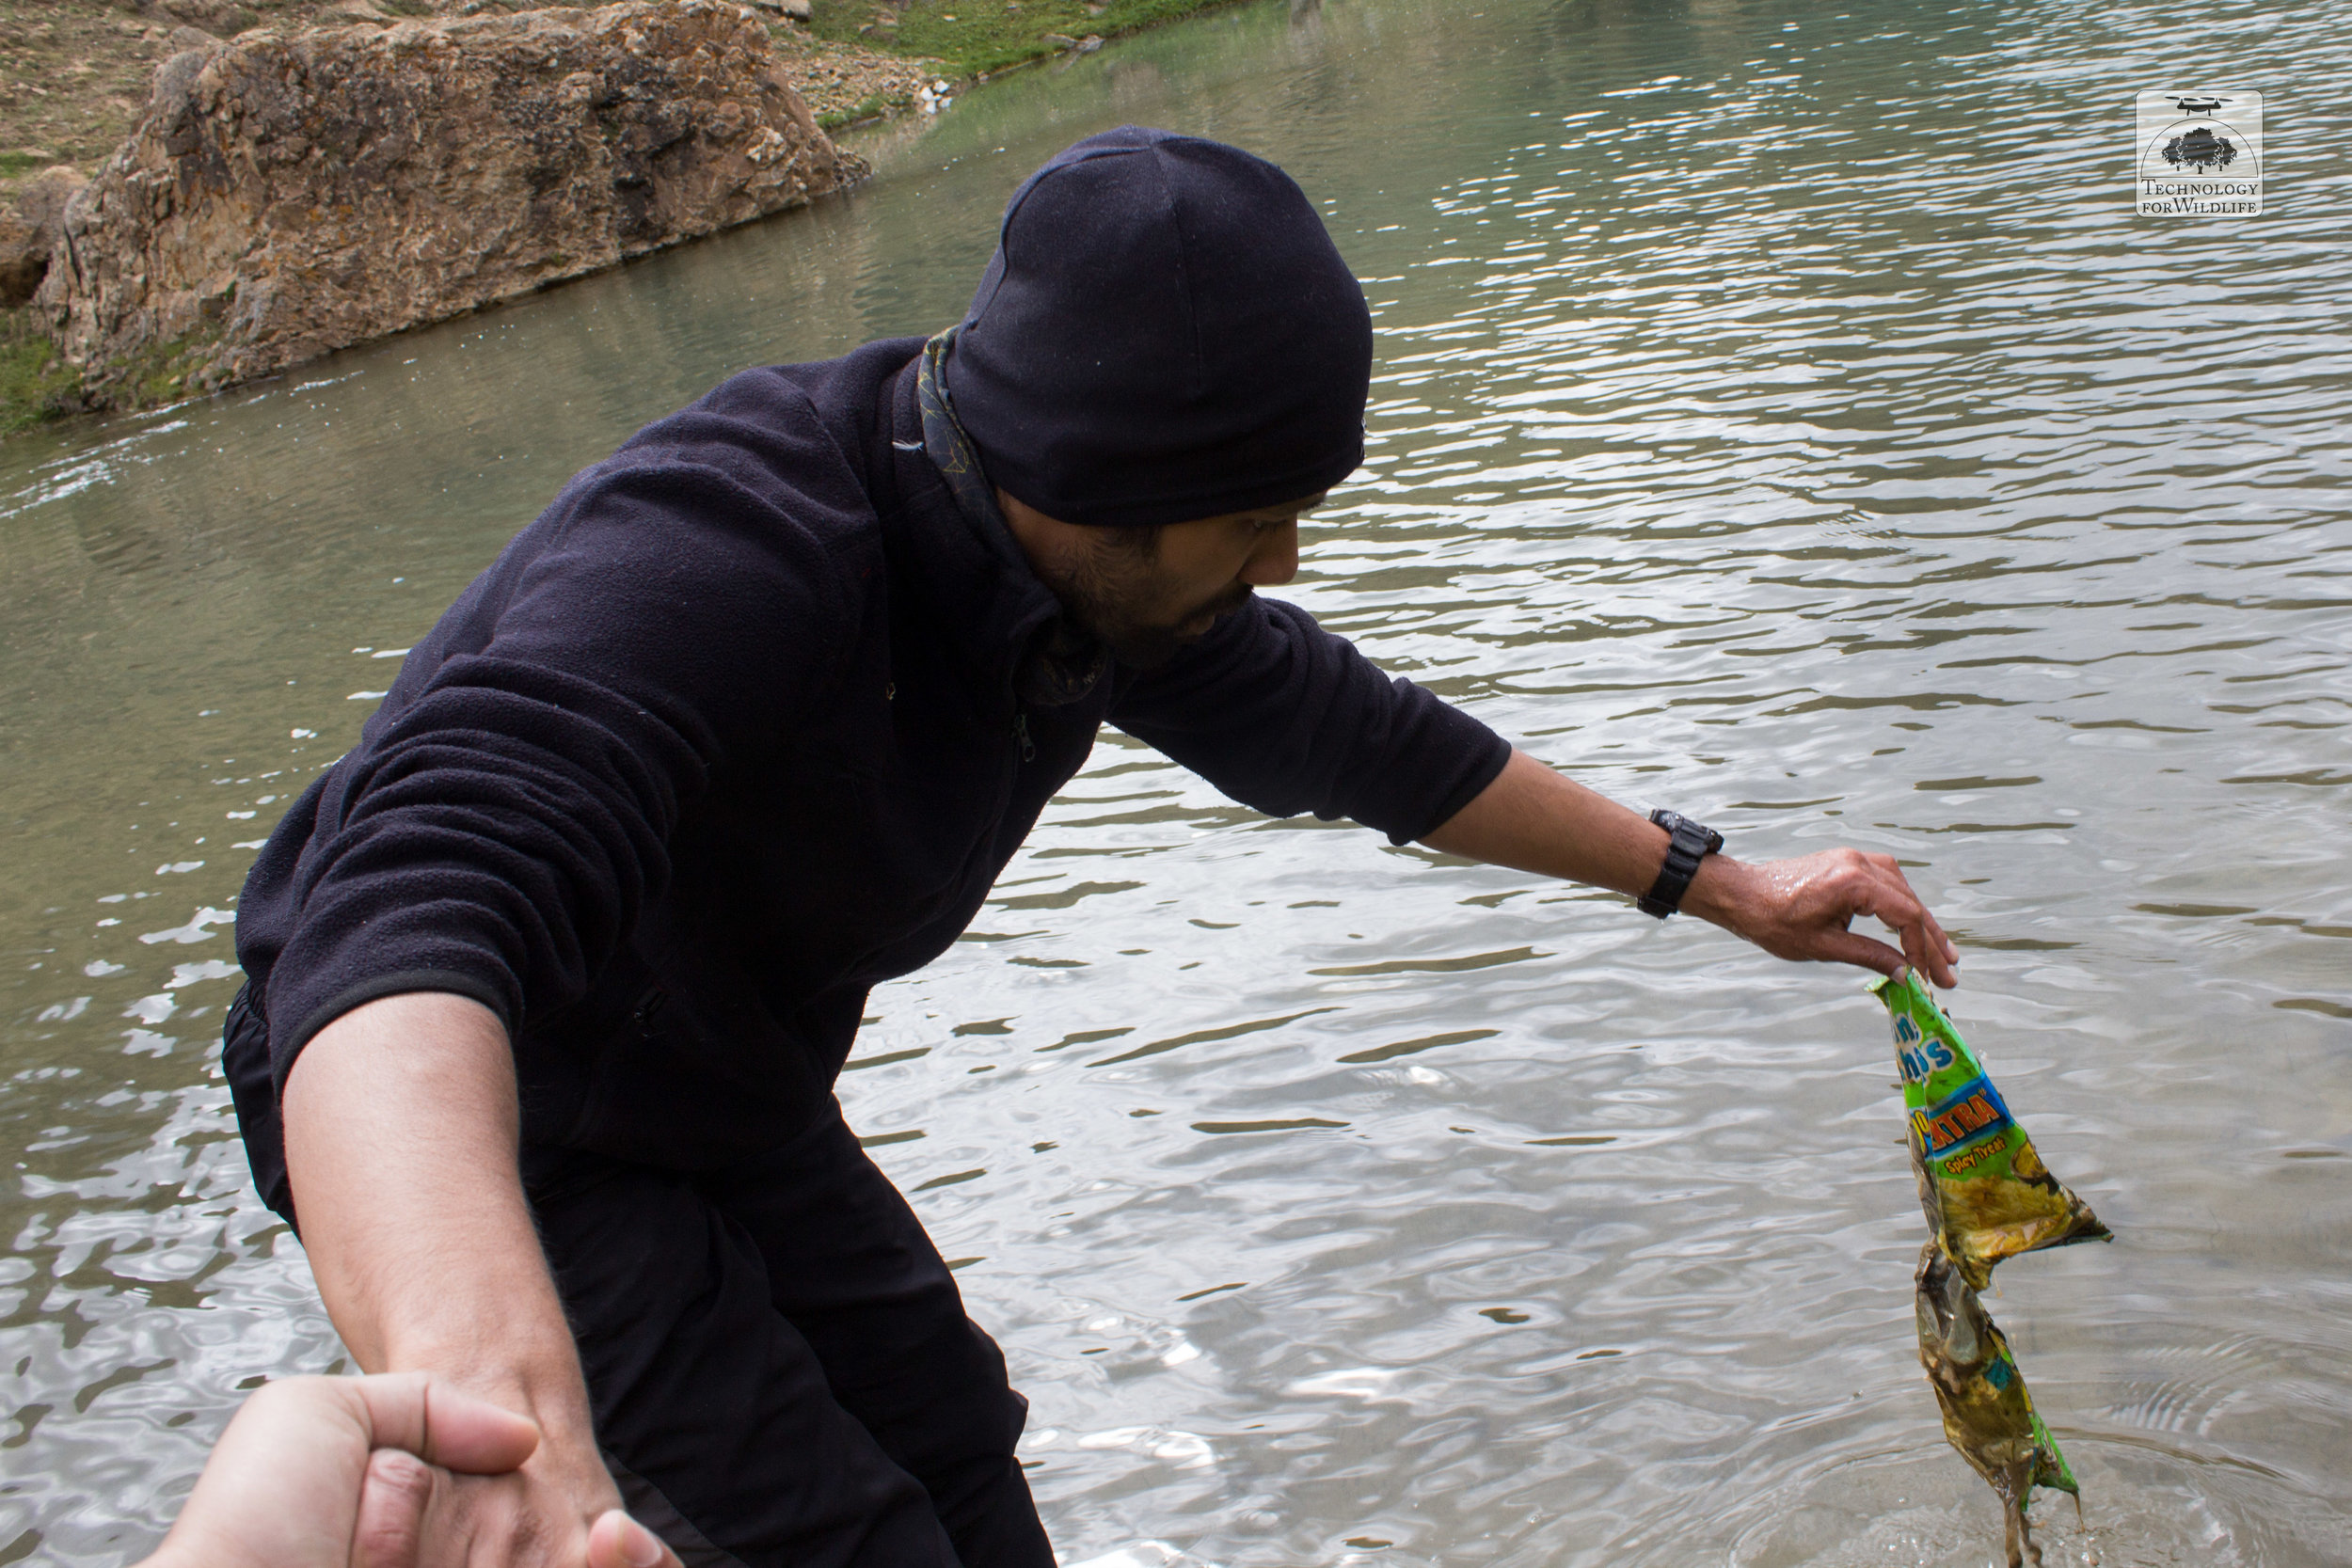 The author removing litter from a high-altitude lake in Ladakh. Photo: Shashank Srinivasan | 2019